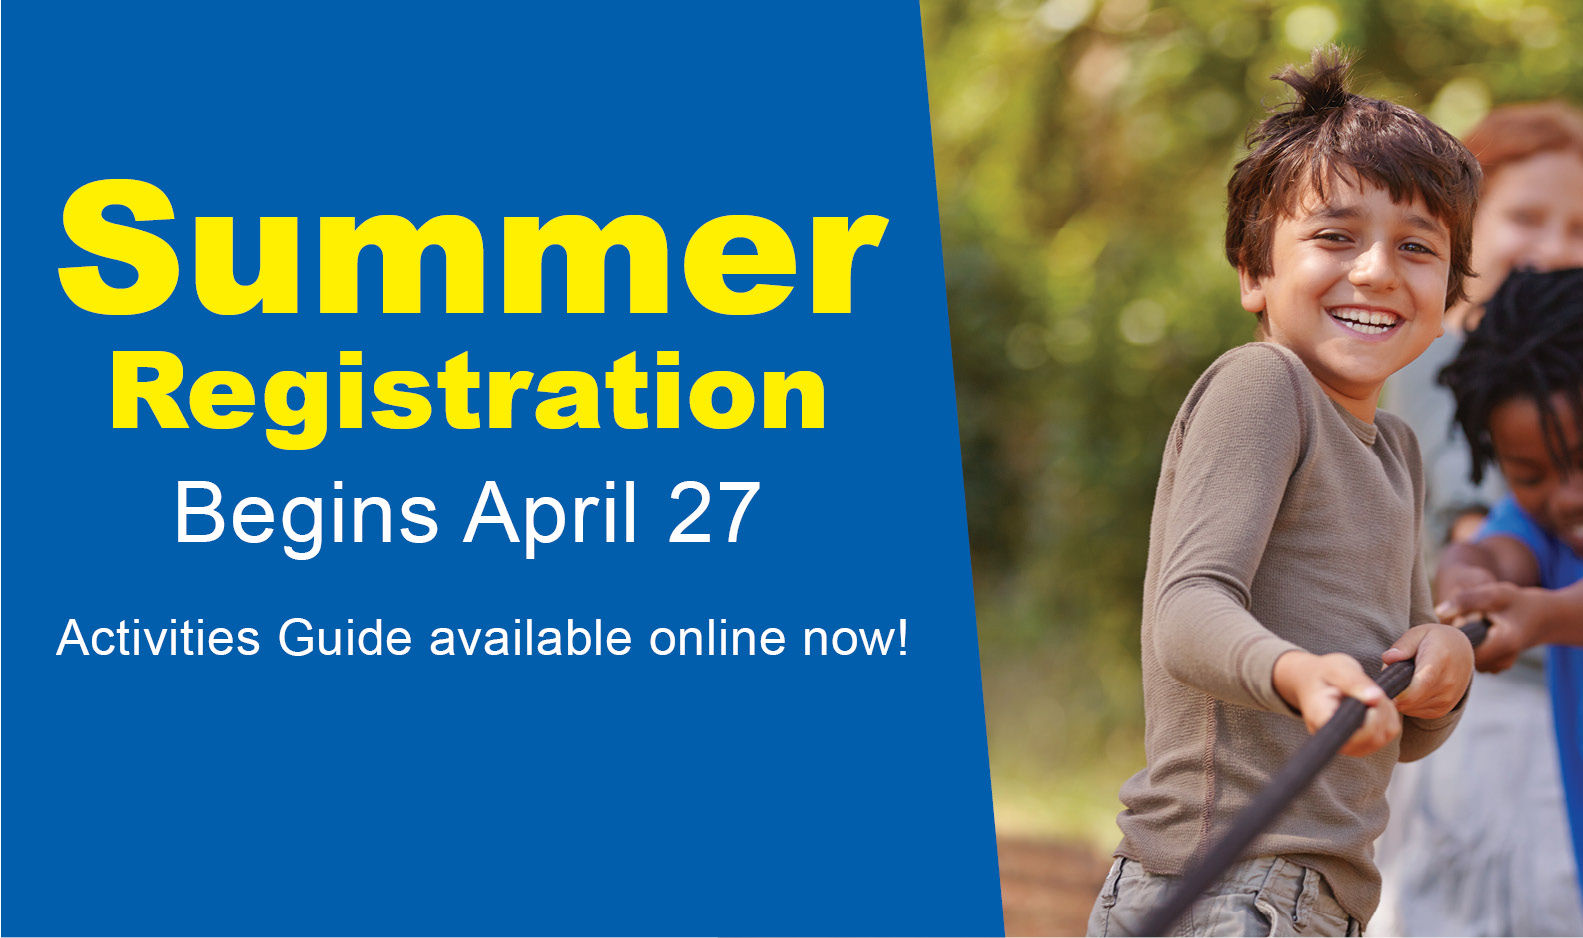 Summer Activities Guide - Available online!